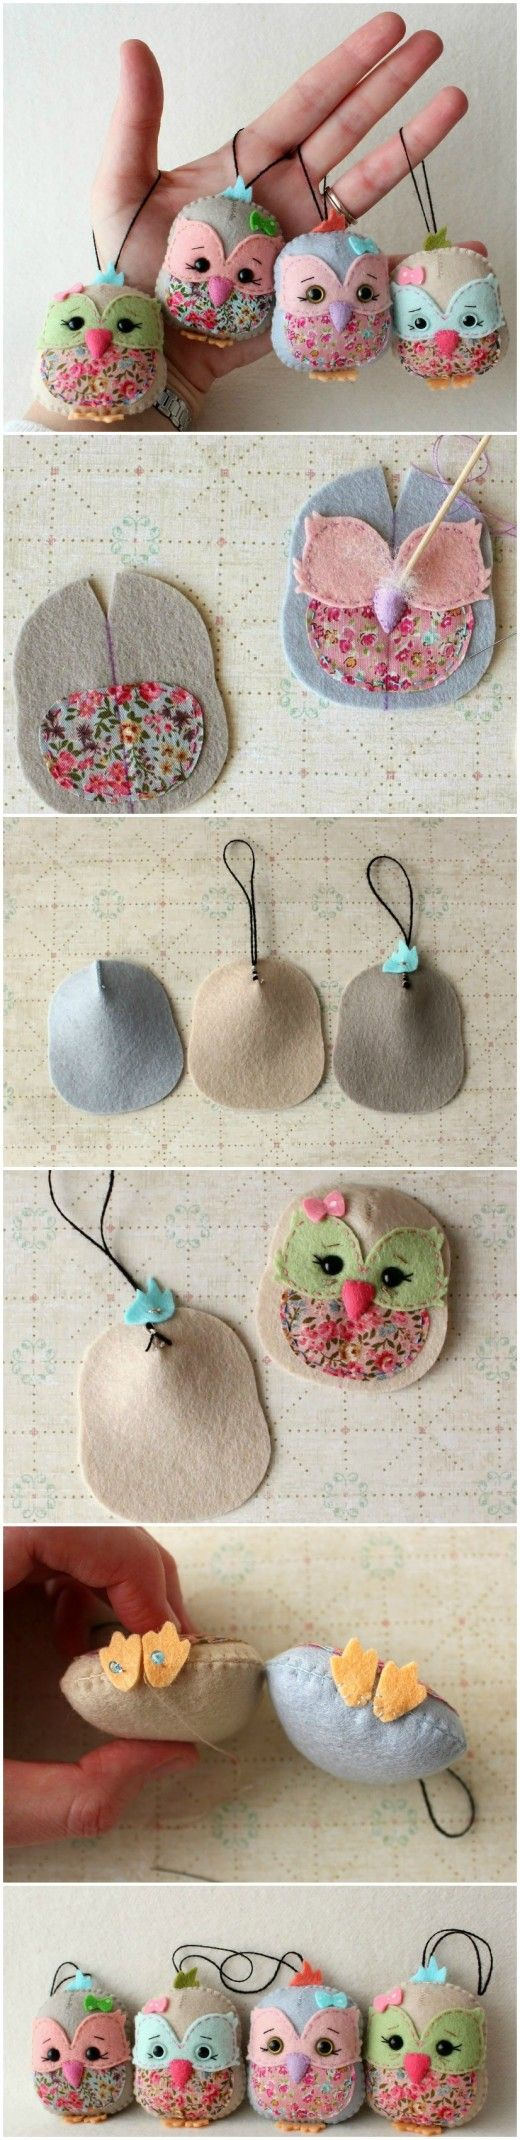 Gingermelon Dolls: Free Pattern – Little Lark Lavender Sachet | DIY Crafts Tips                                                                                                                                                                                 Mais